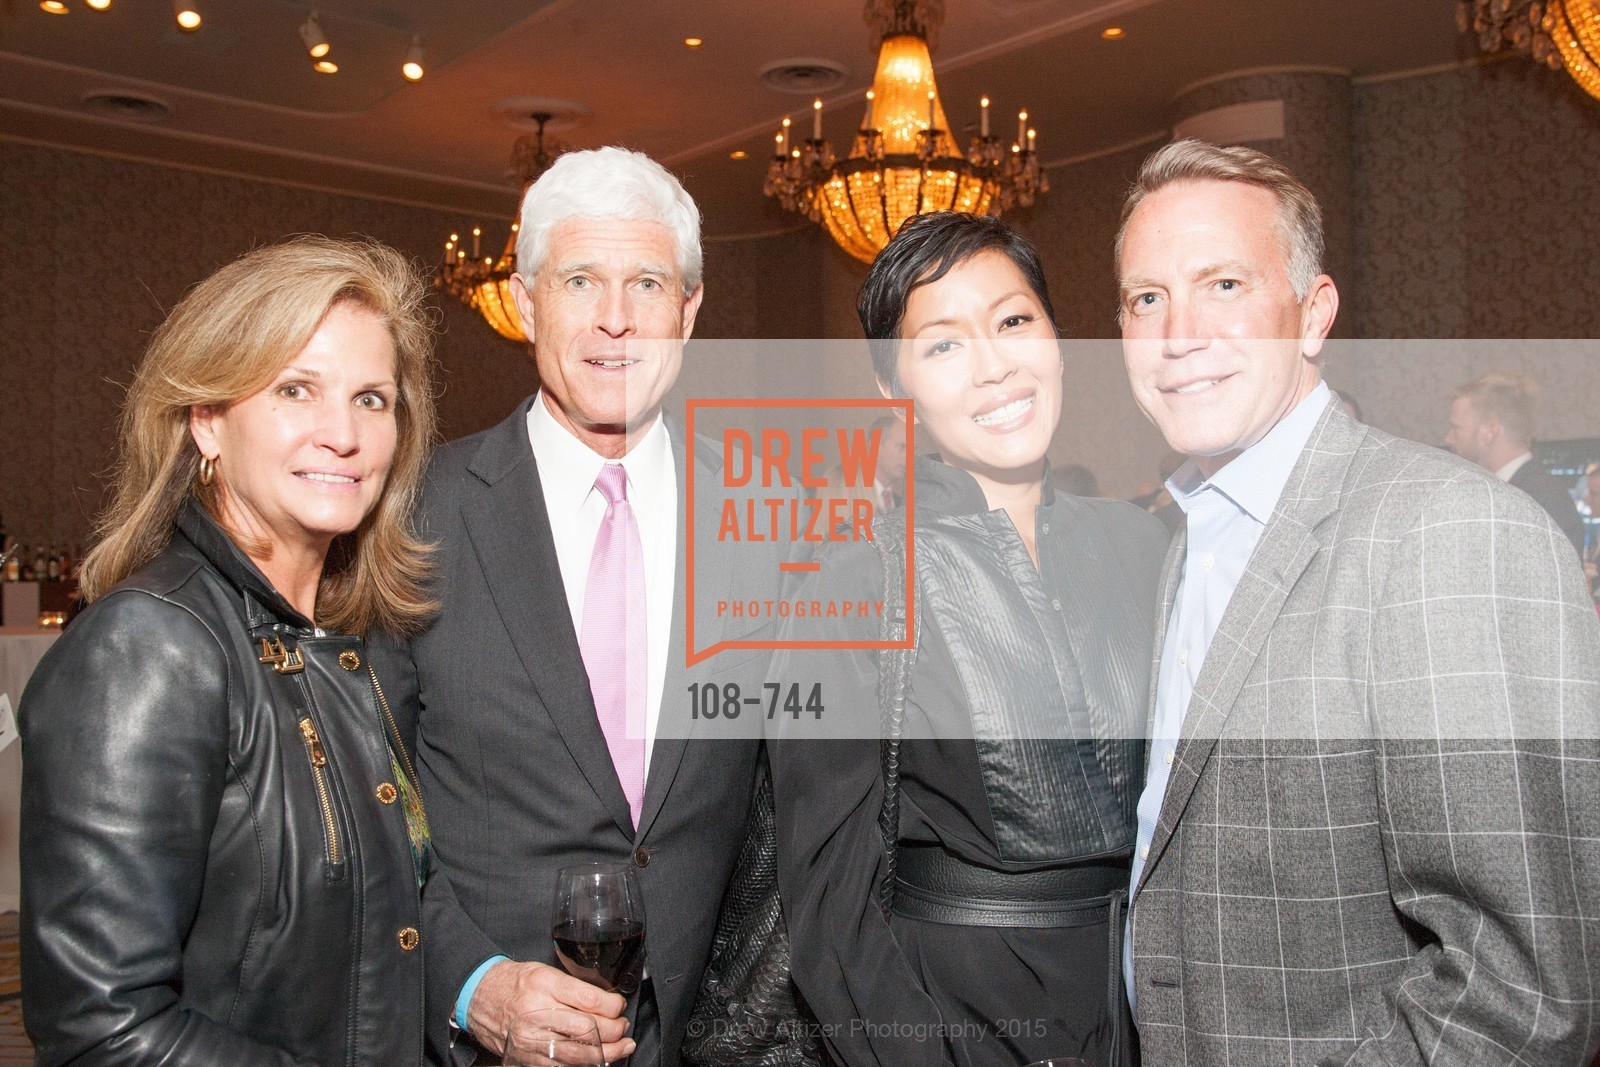 Holly Depatie, Michael Depatie, Linda Stiles, Rod Stiles, Celebration of Launch of SHYP in Los Angeles, US, May 20th, 2015,Drew Altizer, Drew Altizer Photography, full-service agency, private events, San Francisco photographer, photographer california